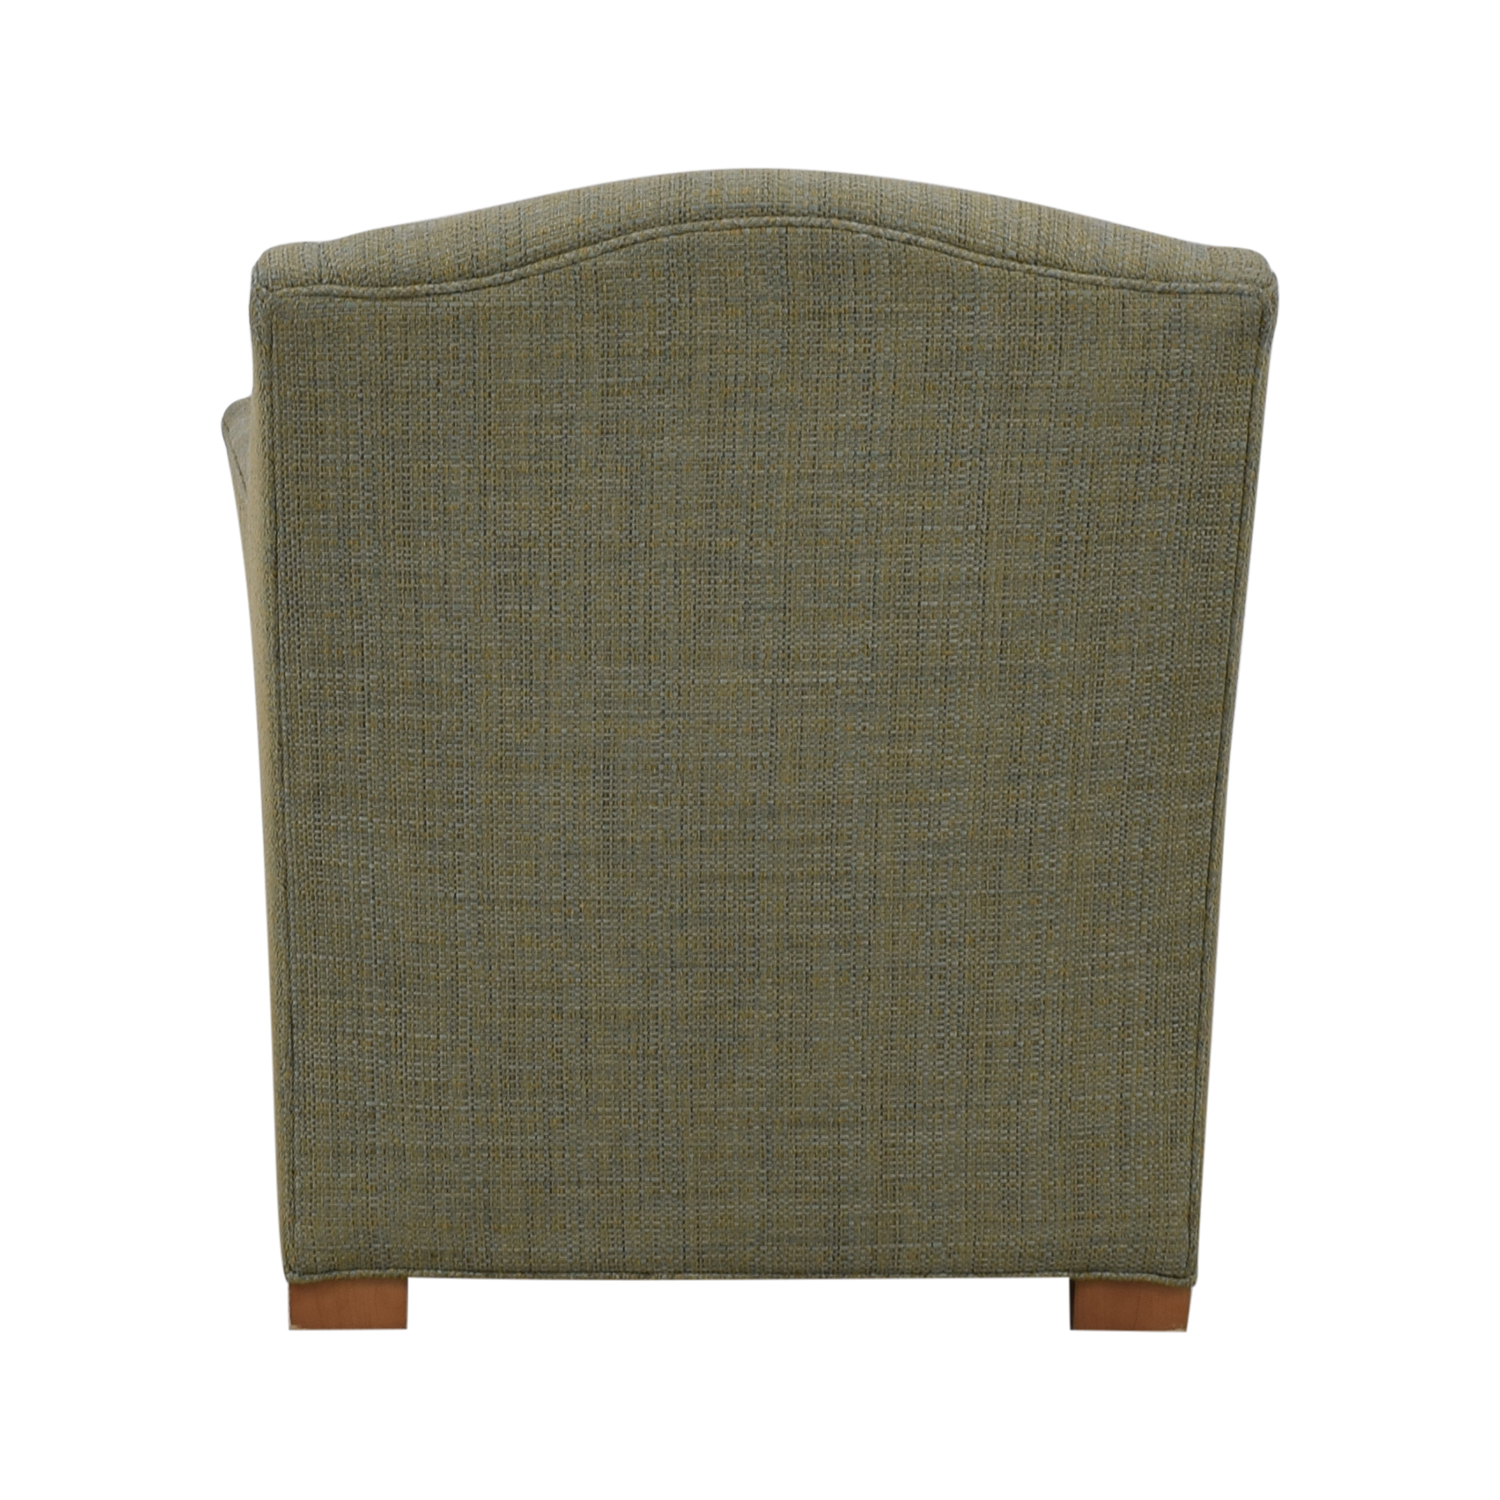 Mitchell Gold + Bob Williams Mitchell Gold + Bob Williams Armchair Chairs